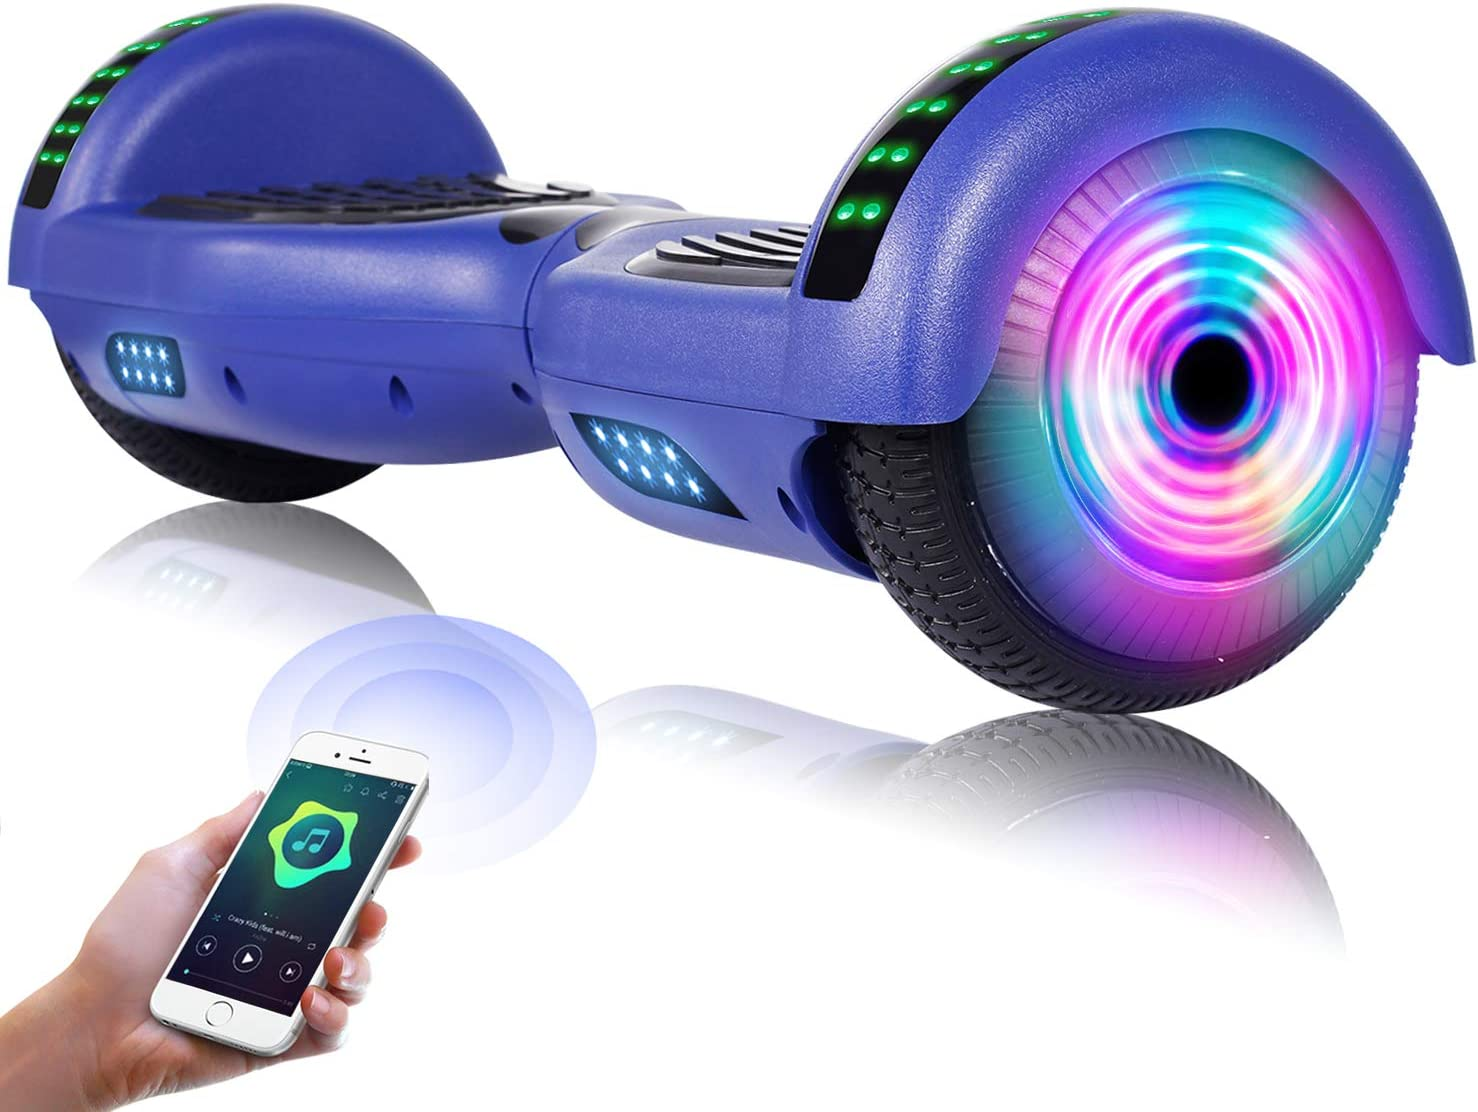 EPCTEK Hoverboard 人気の定番 Self Balancing Spe Bluetooth Hoverboards ランキング総合1位 with